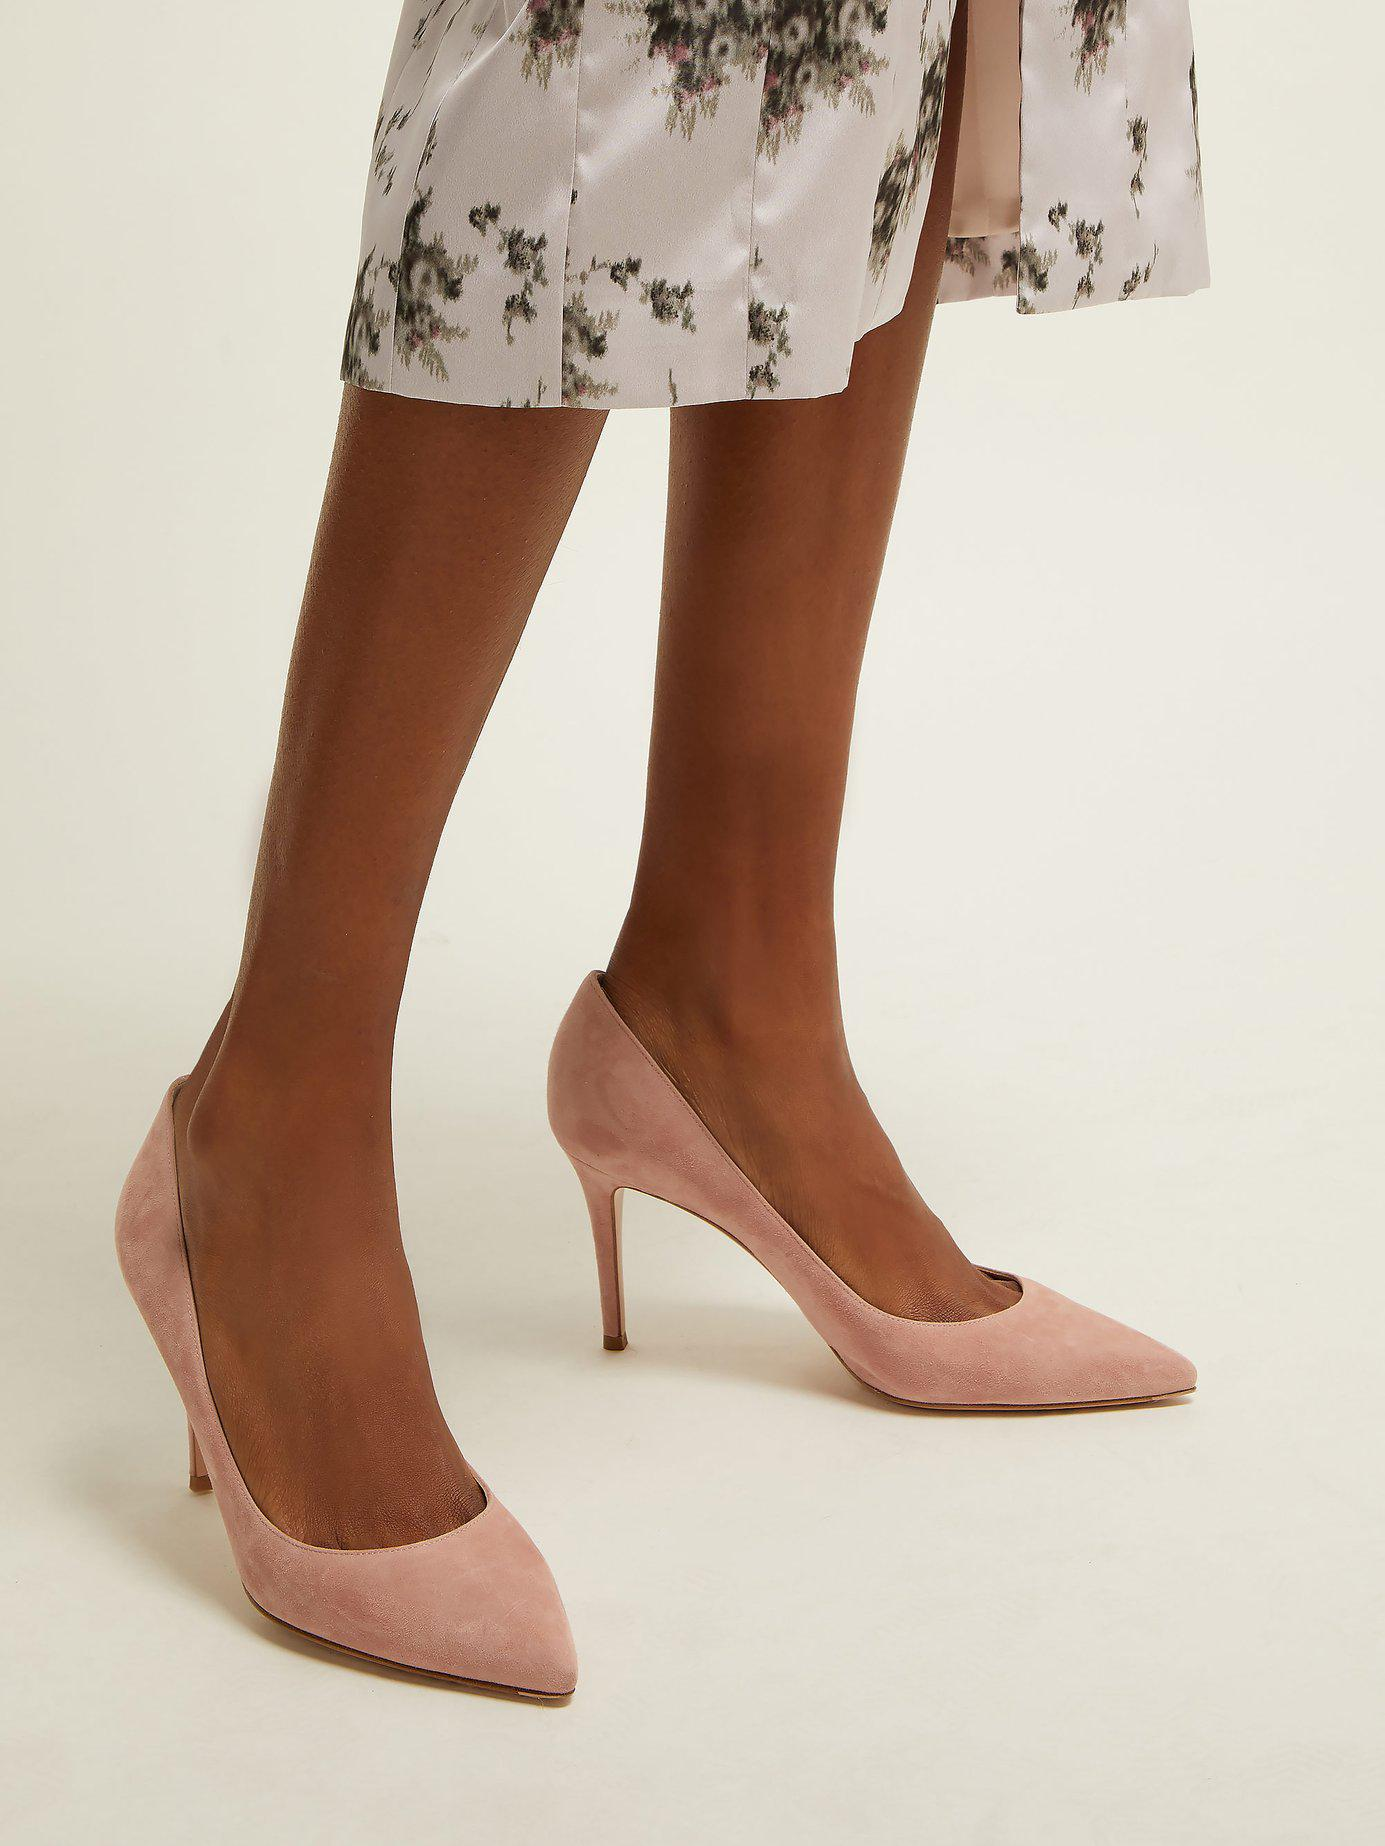 a29e5b4a430 Gianvito Rossi - Pink Gianvito 85 Point Toe Suede Pumps - Lyst. View  fullscreen